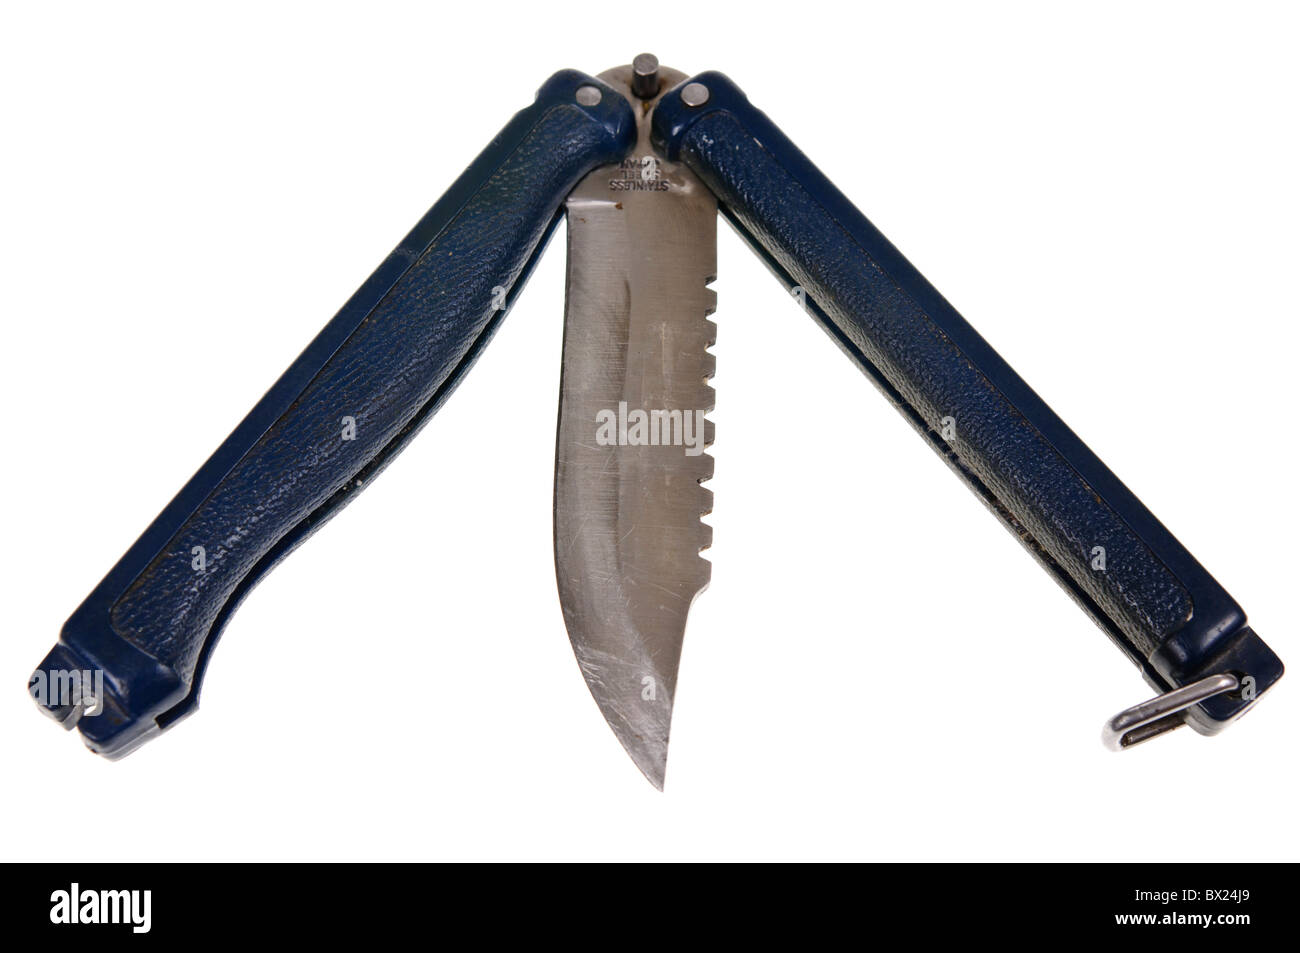 Balisong, otherwise known as a Butterfly Knife, illegal in many countries including the UK - Stock Image